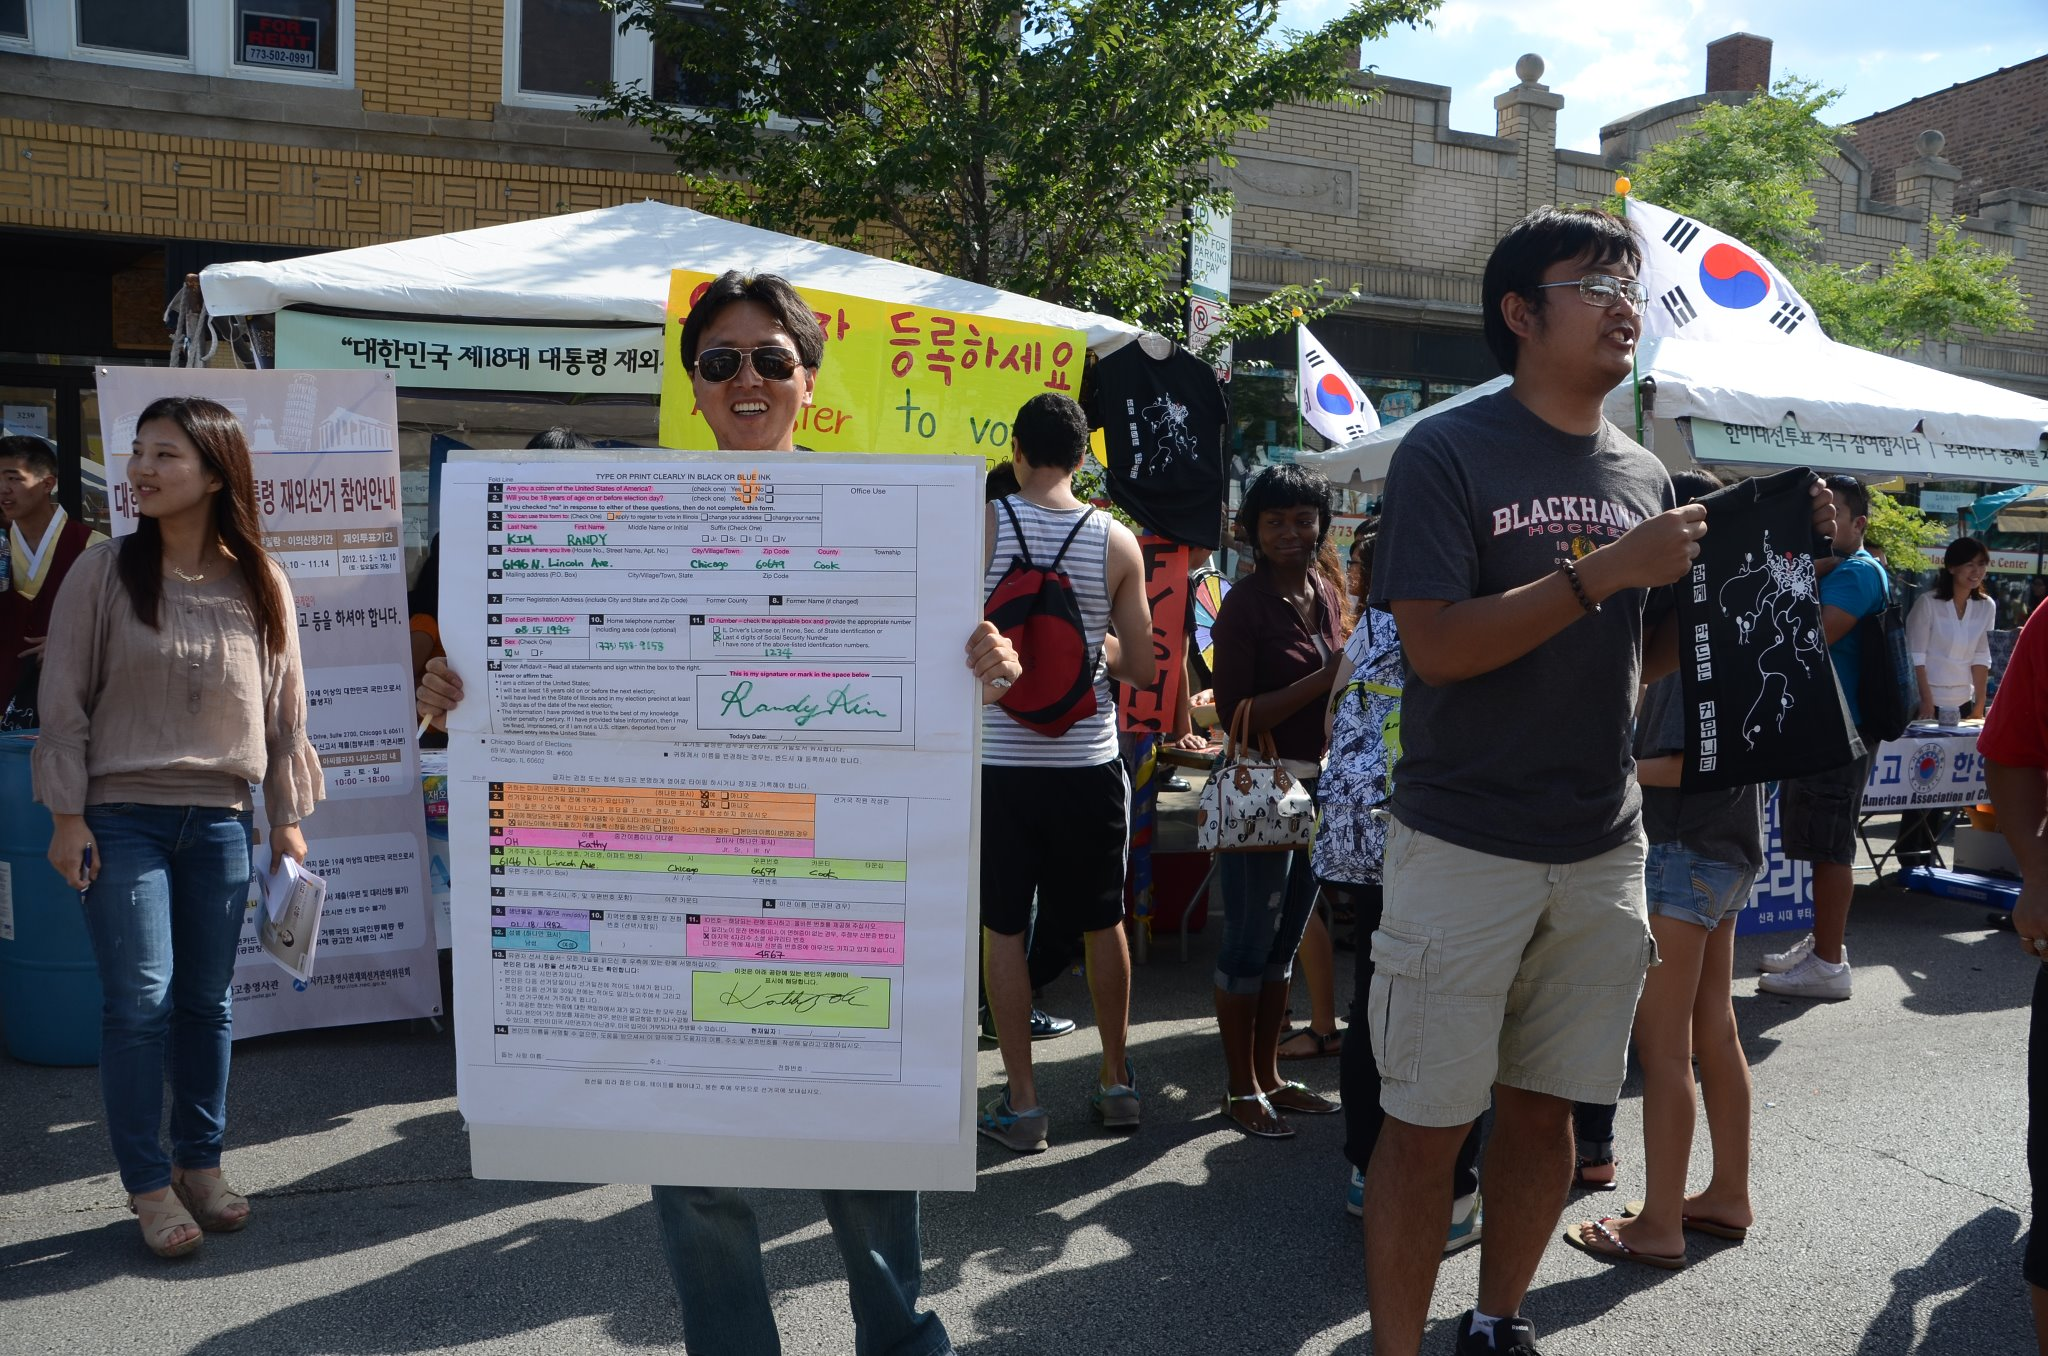 Randy Kim holds a blown-up voter registration form, surrounded by people doing voter outreach for KRCC with signs in English and Korean.